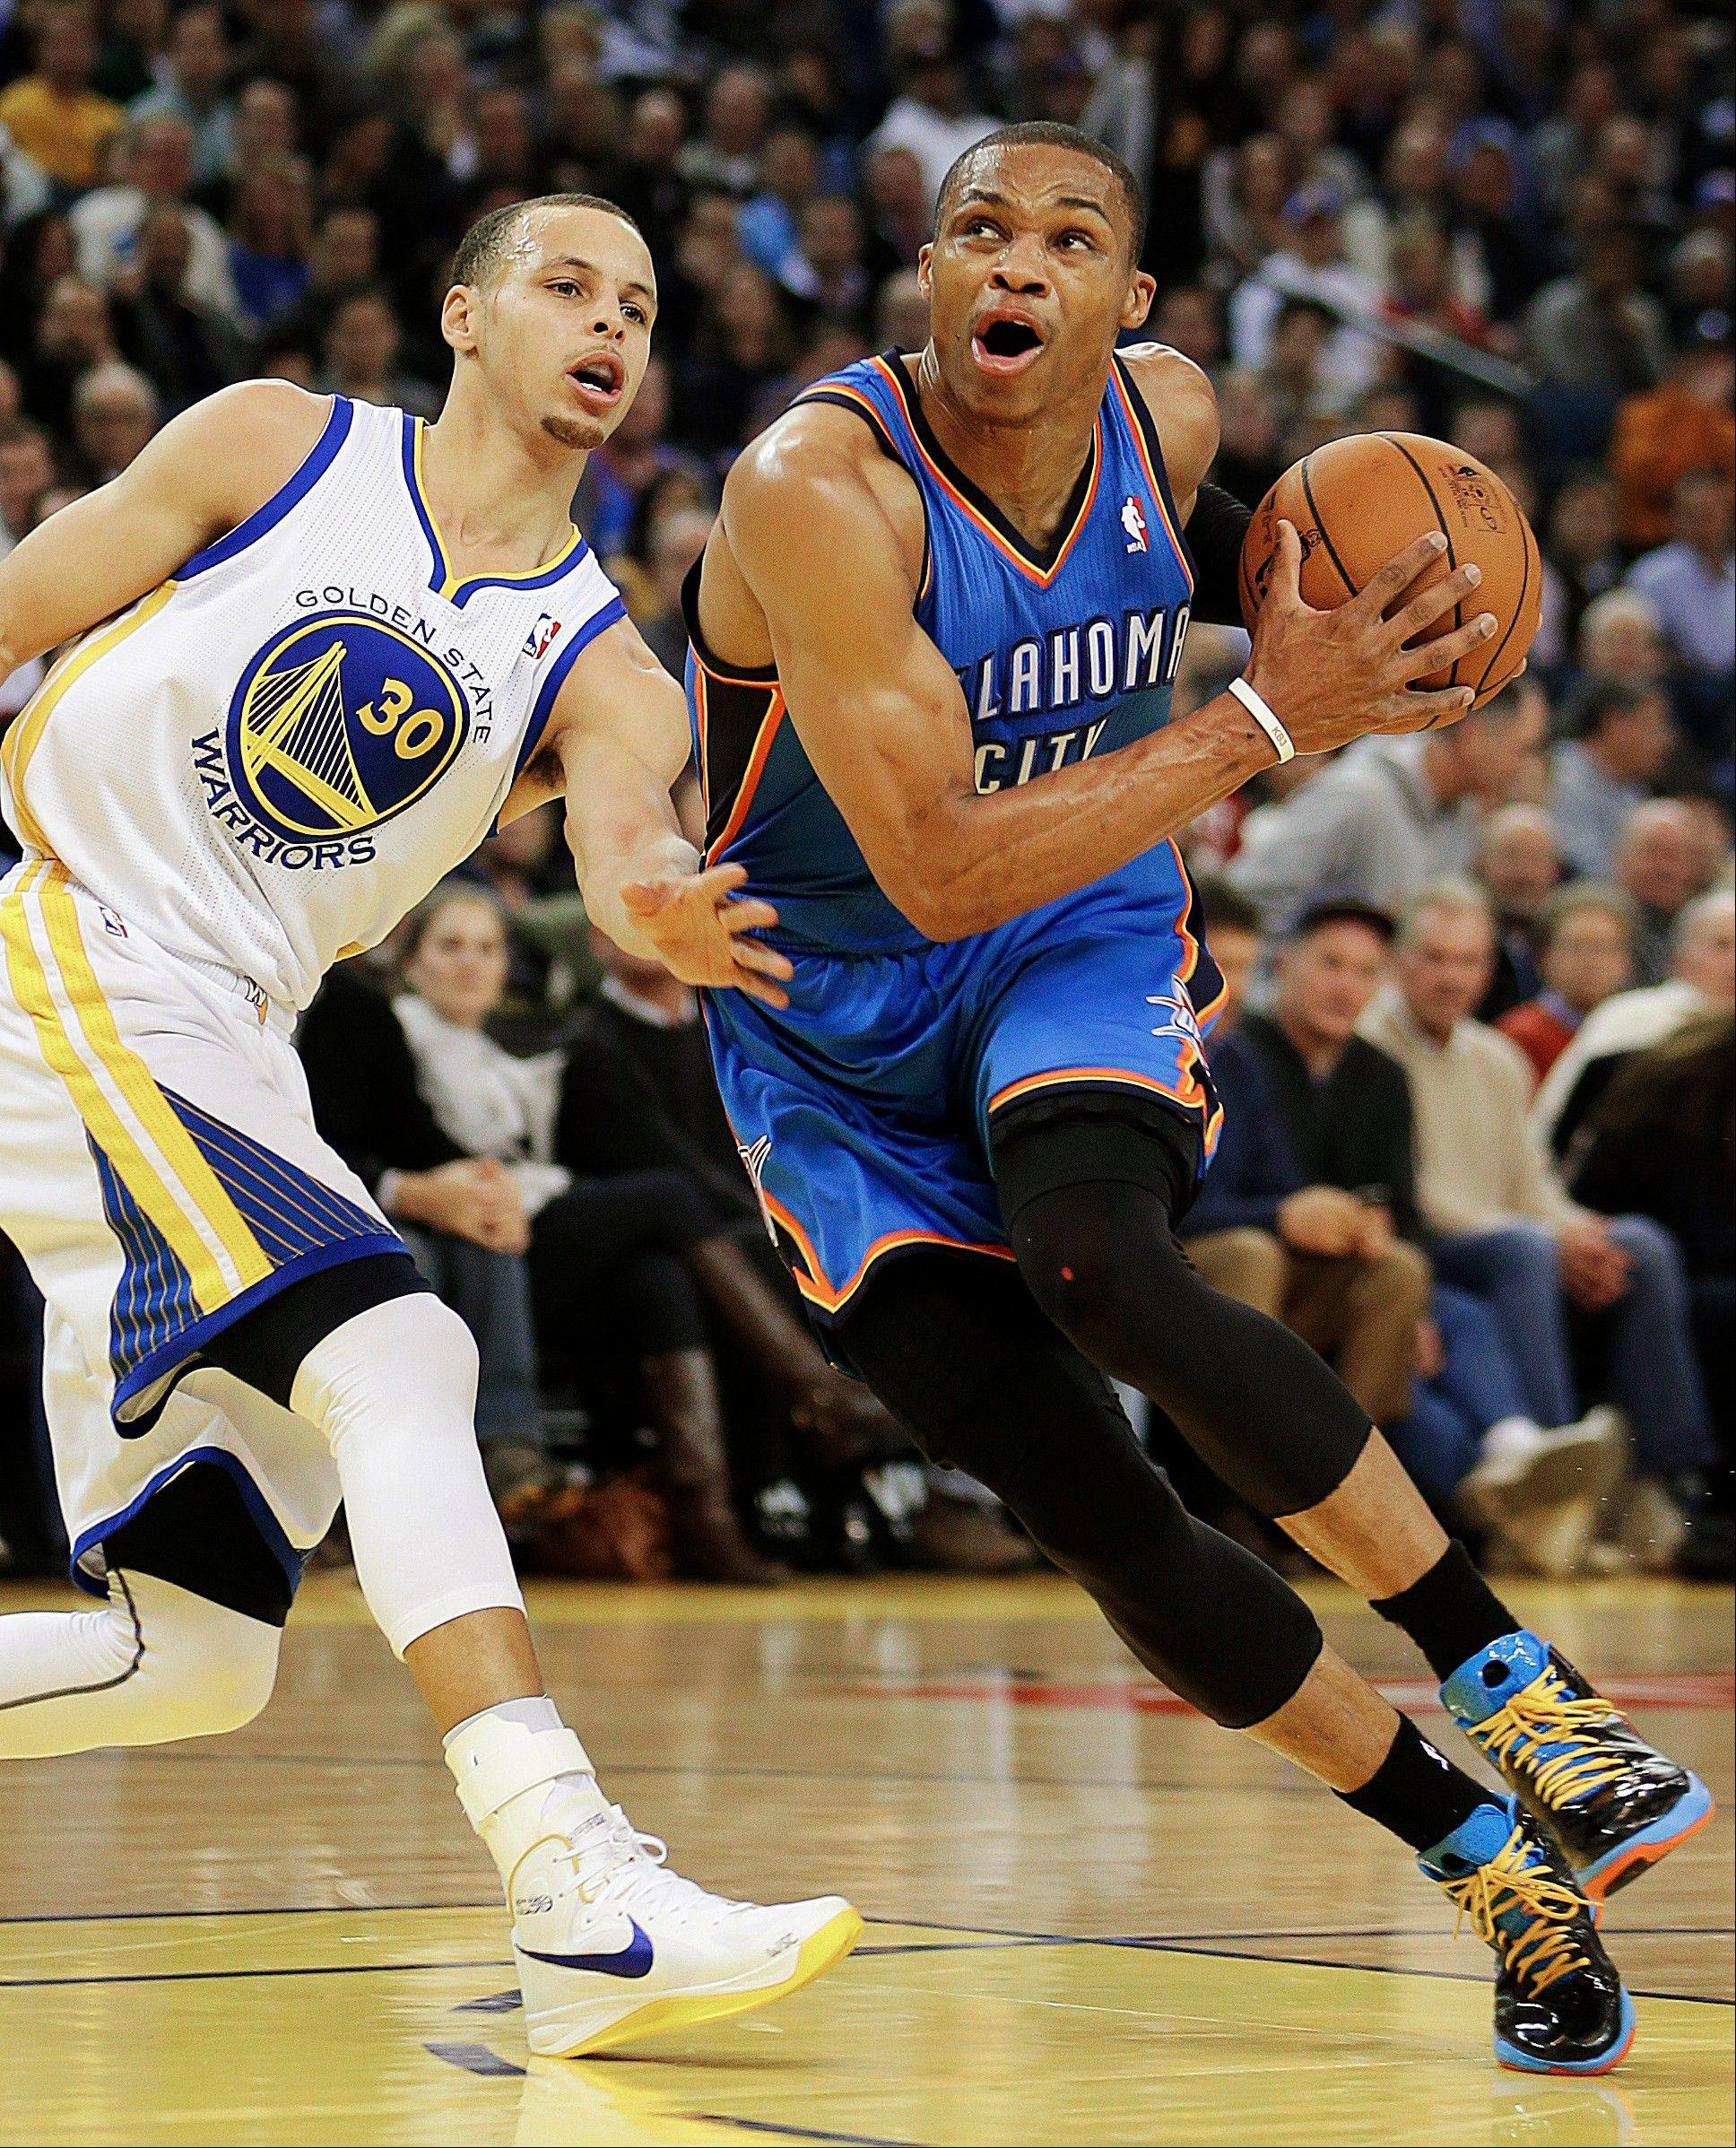 Oklahoma City Thunder�s Russell Westbrook, right, drives past Golden State Warriors� Stephen Curry (30) during the first half of an NBA basketball game, Wednesday, Jan. 23, 2013, in Oakland, Calif.